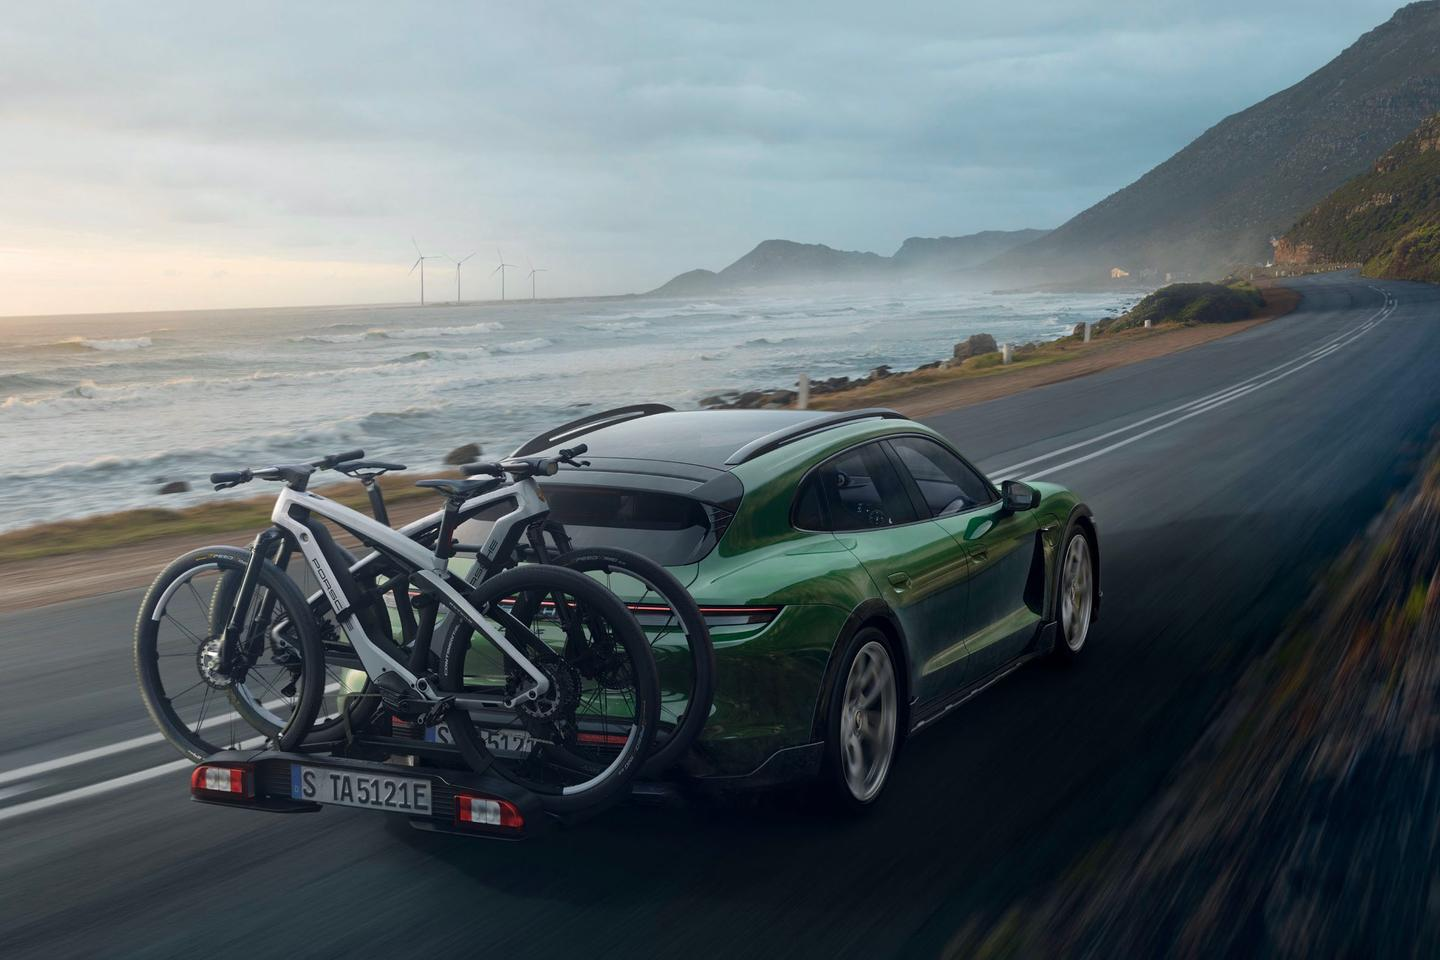 Porsche is stepping into the ebike game in style with a pair of dual-suspension beauties